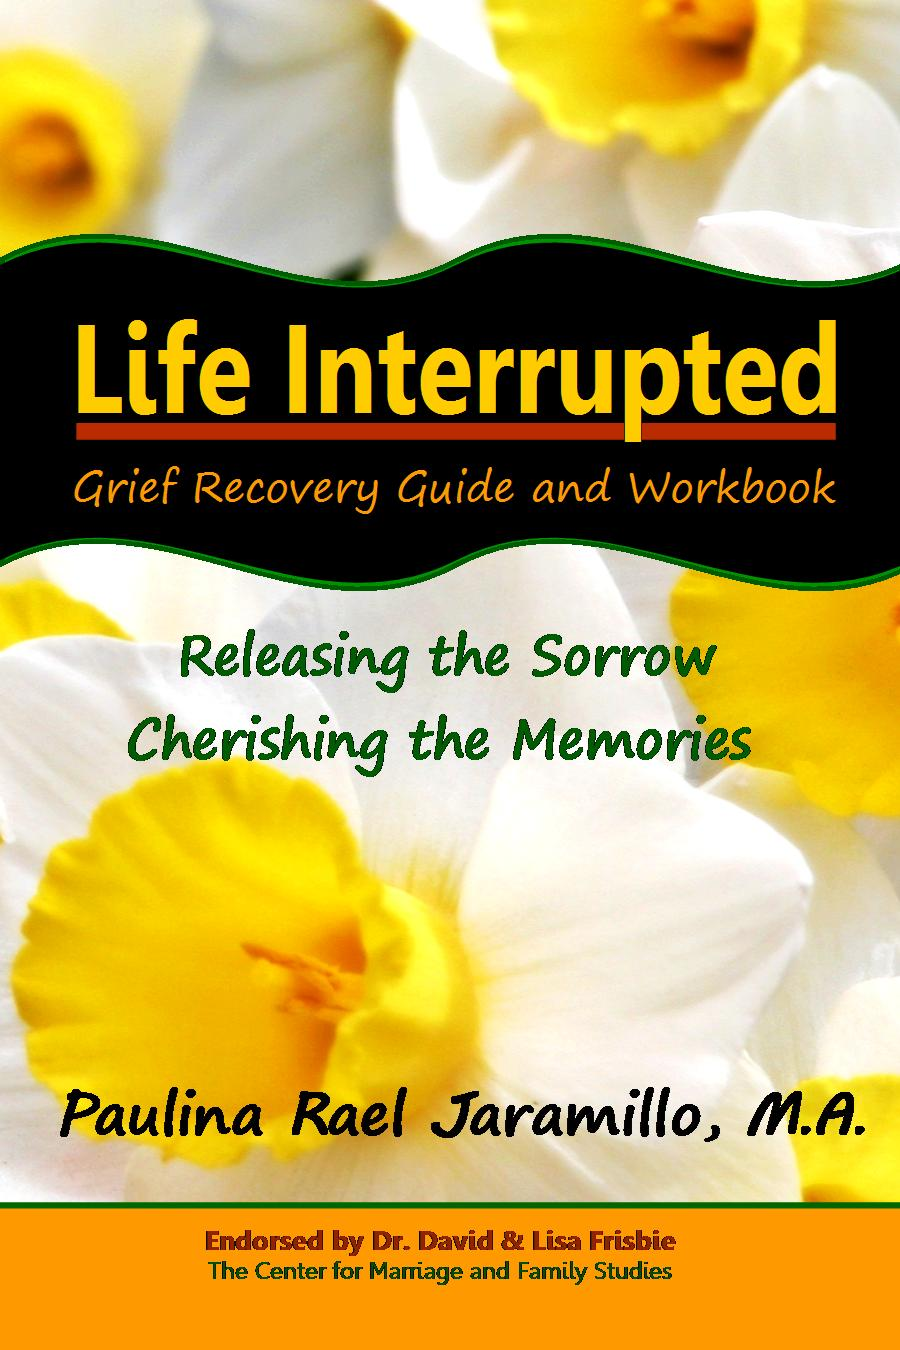 Life Interrupted: Grief Recovery Guide and Workbook